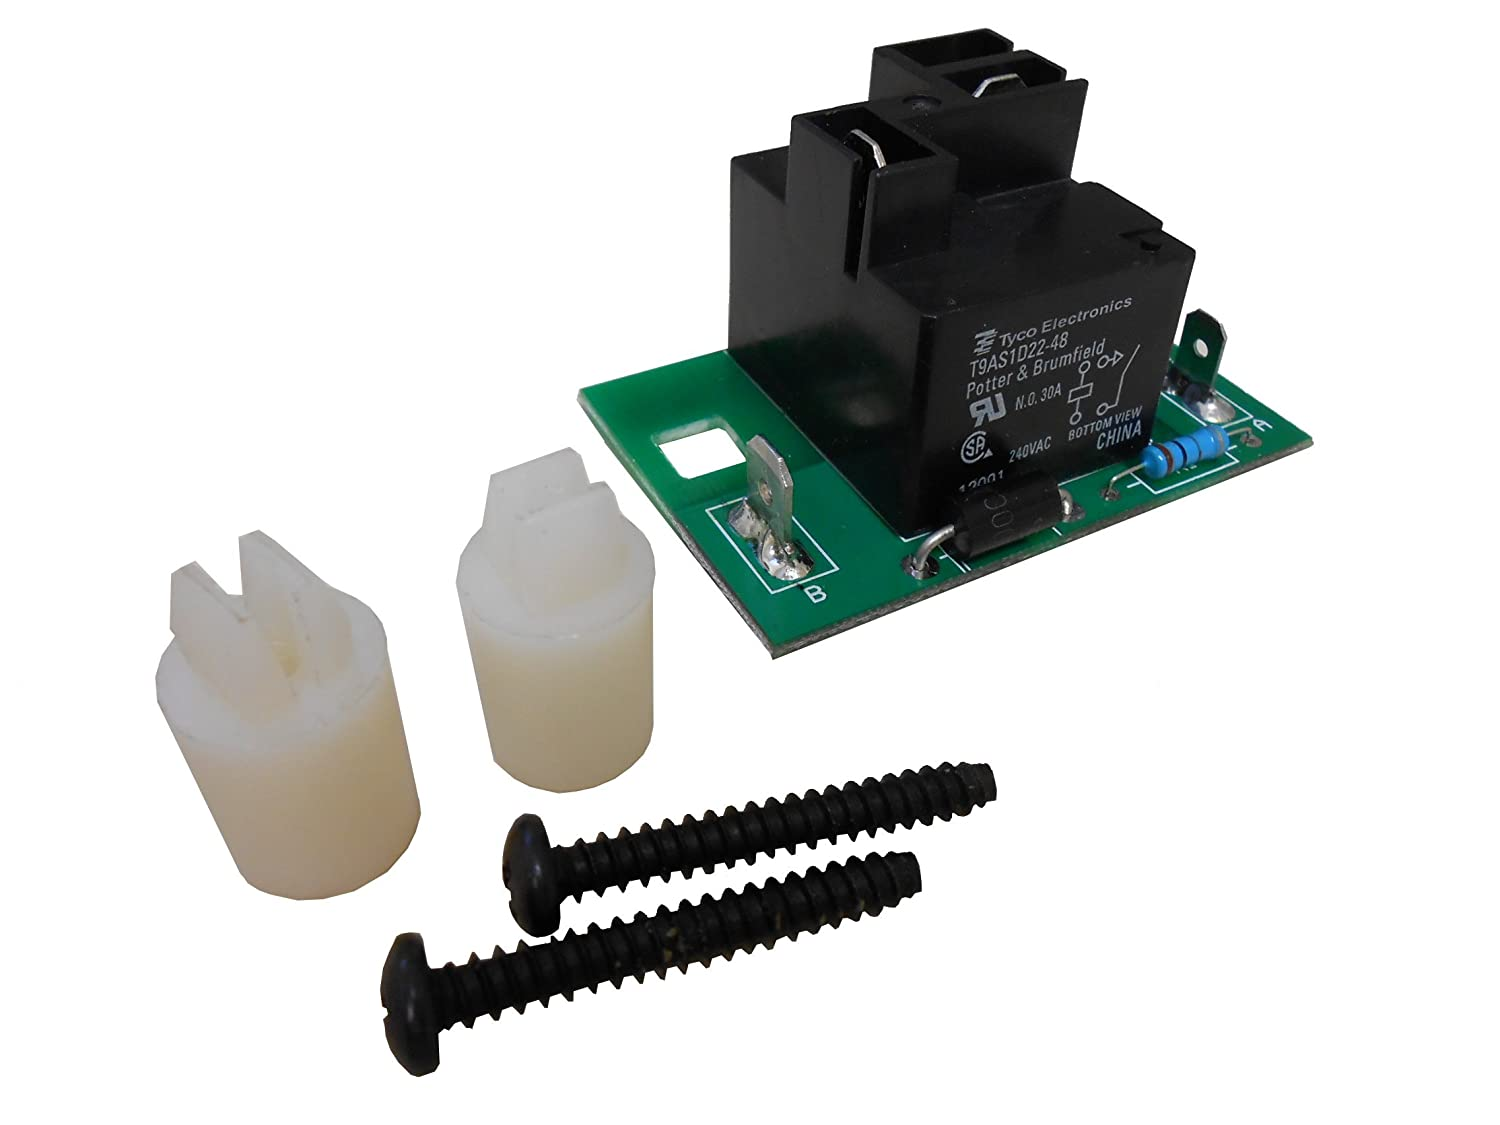 Club Car Golf Cart Powerdrive 3 Charger Relay Board Schematic 48 Volt Pd3 Power Drive Model Chargers 2004